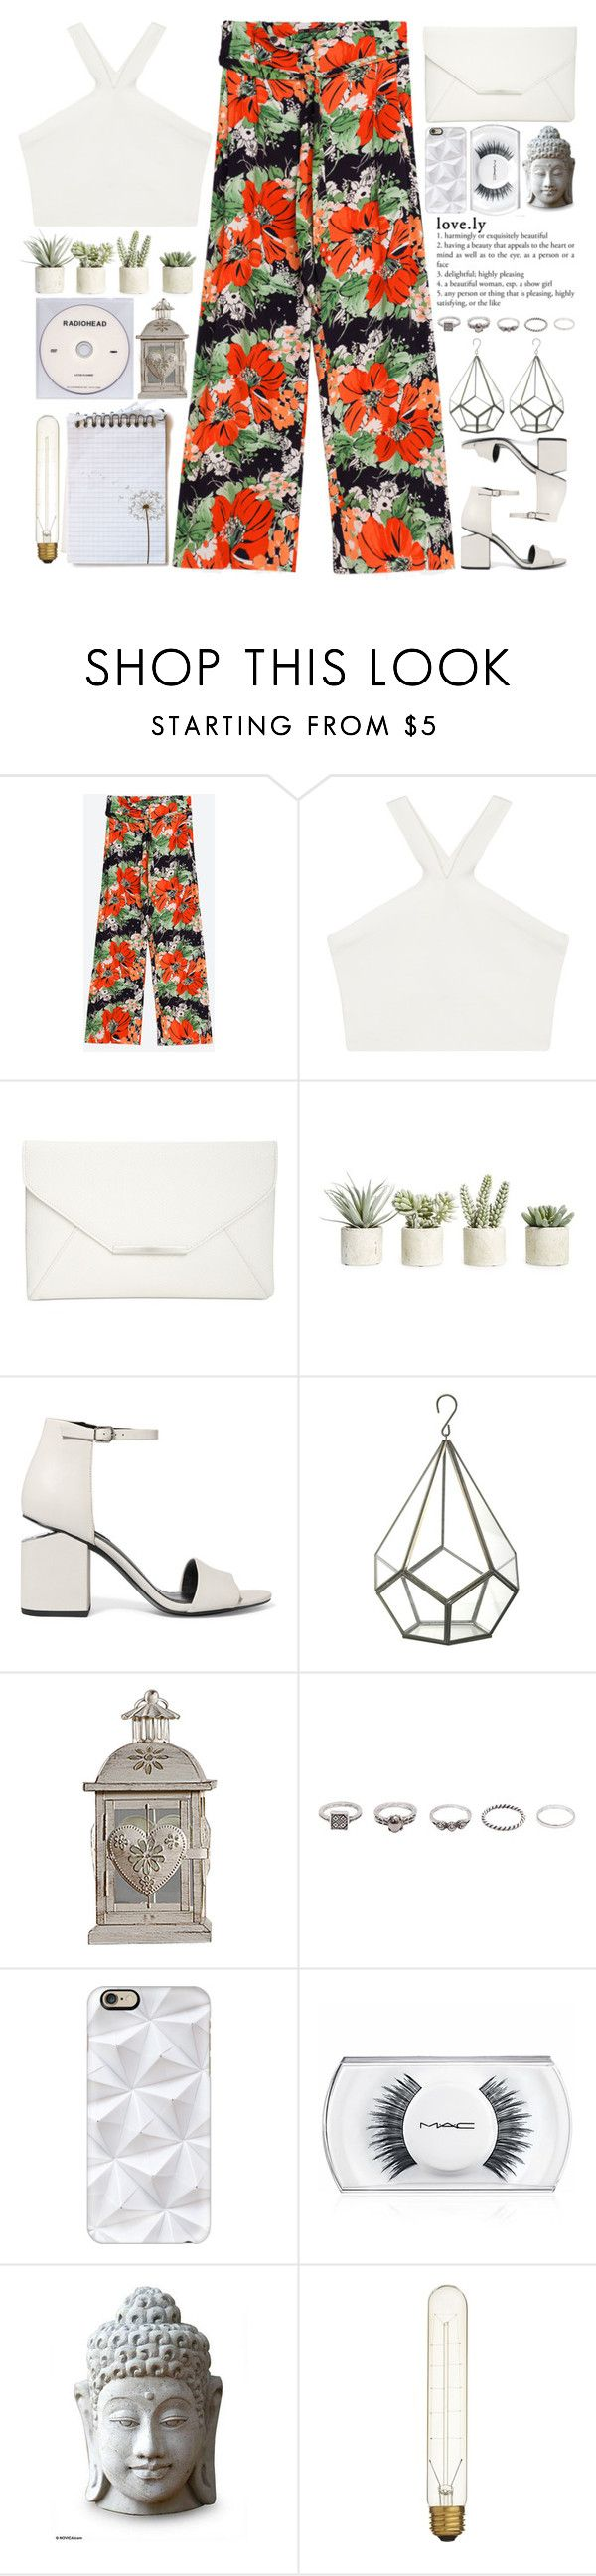 """love.ly"" by doga1 ❤ liked on Polyvore featuring BCBGMAXAZRIA, Style & Co., Allstate Floral, Alexander Wang, KEEP ME, BKE, Casetify, MAC Cosmetics, NOVICA and CB2"